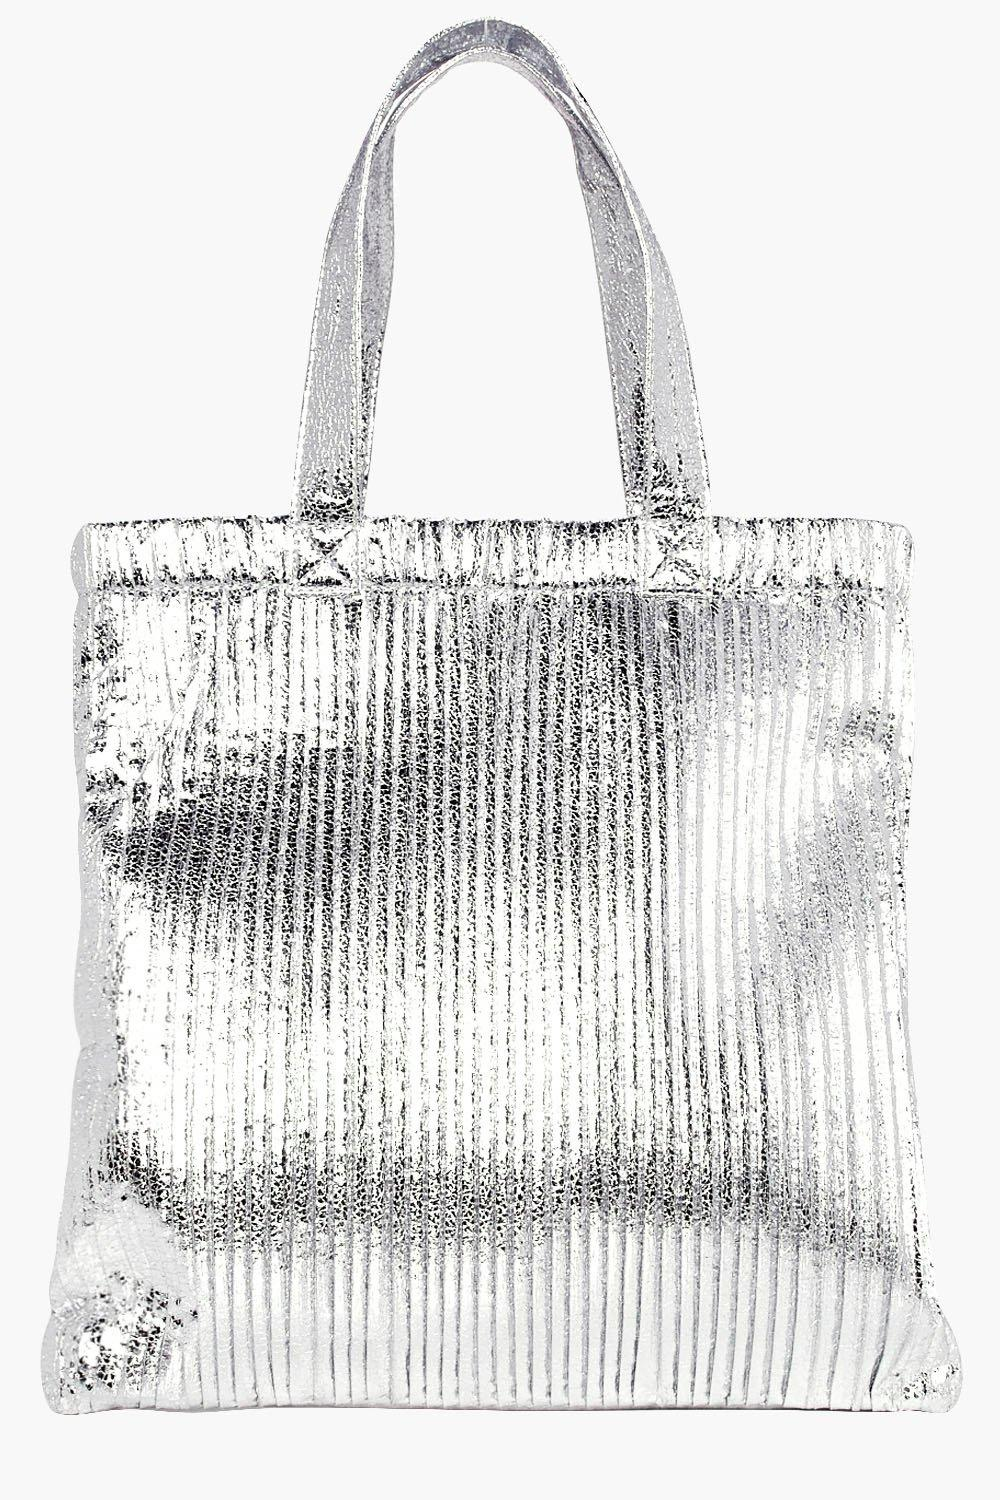 Plisse Effect Metallic Shopper Bag - silver - Alee